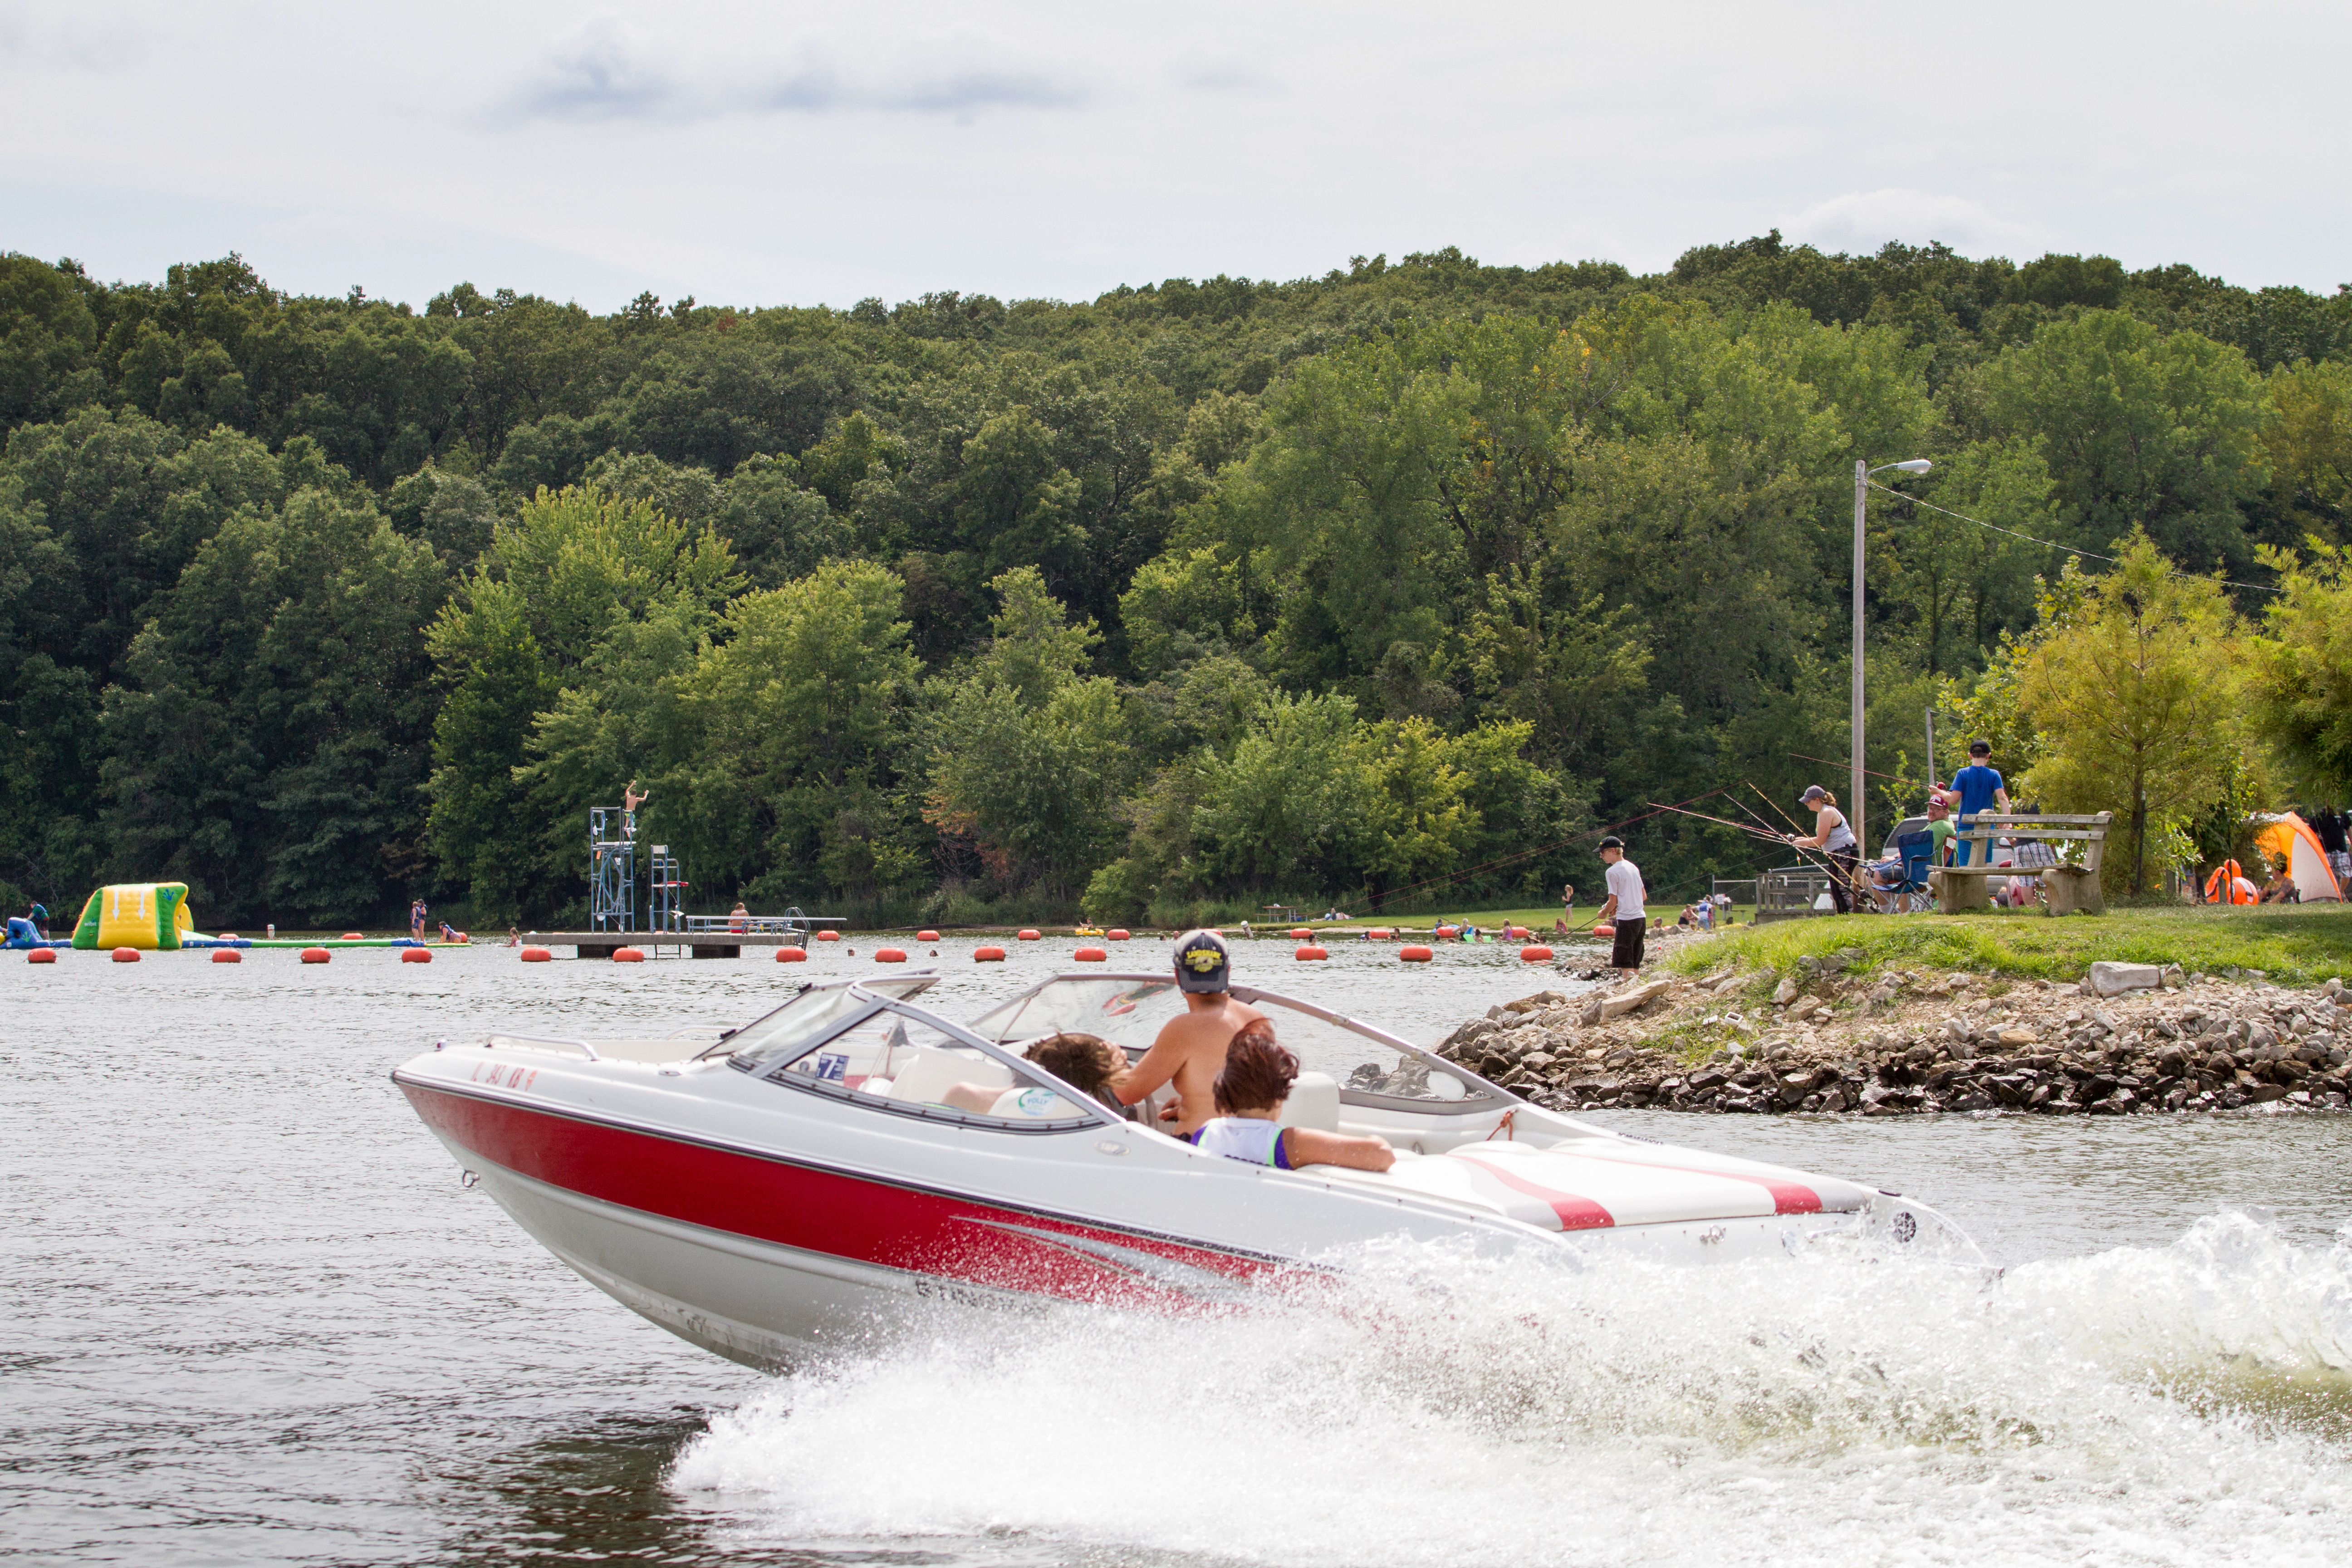 Boating at Lake Lou Yaeger is one of the top 10 things to do in Litchfield.